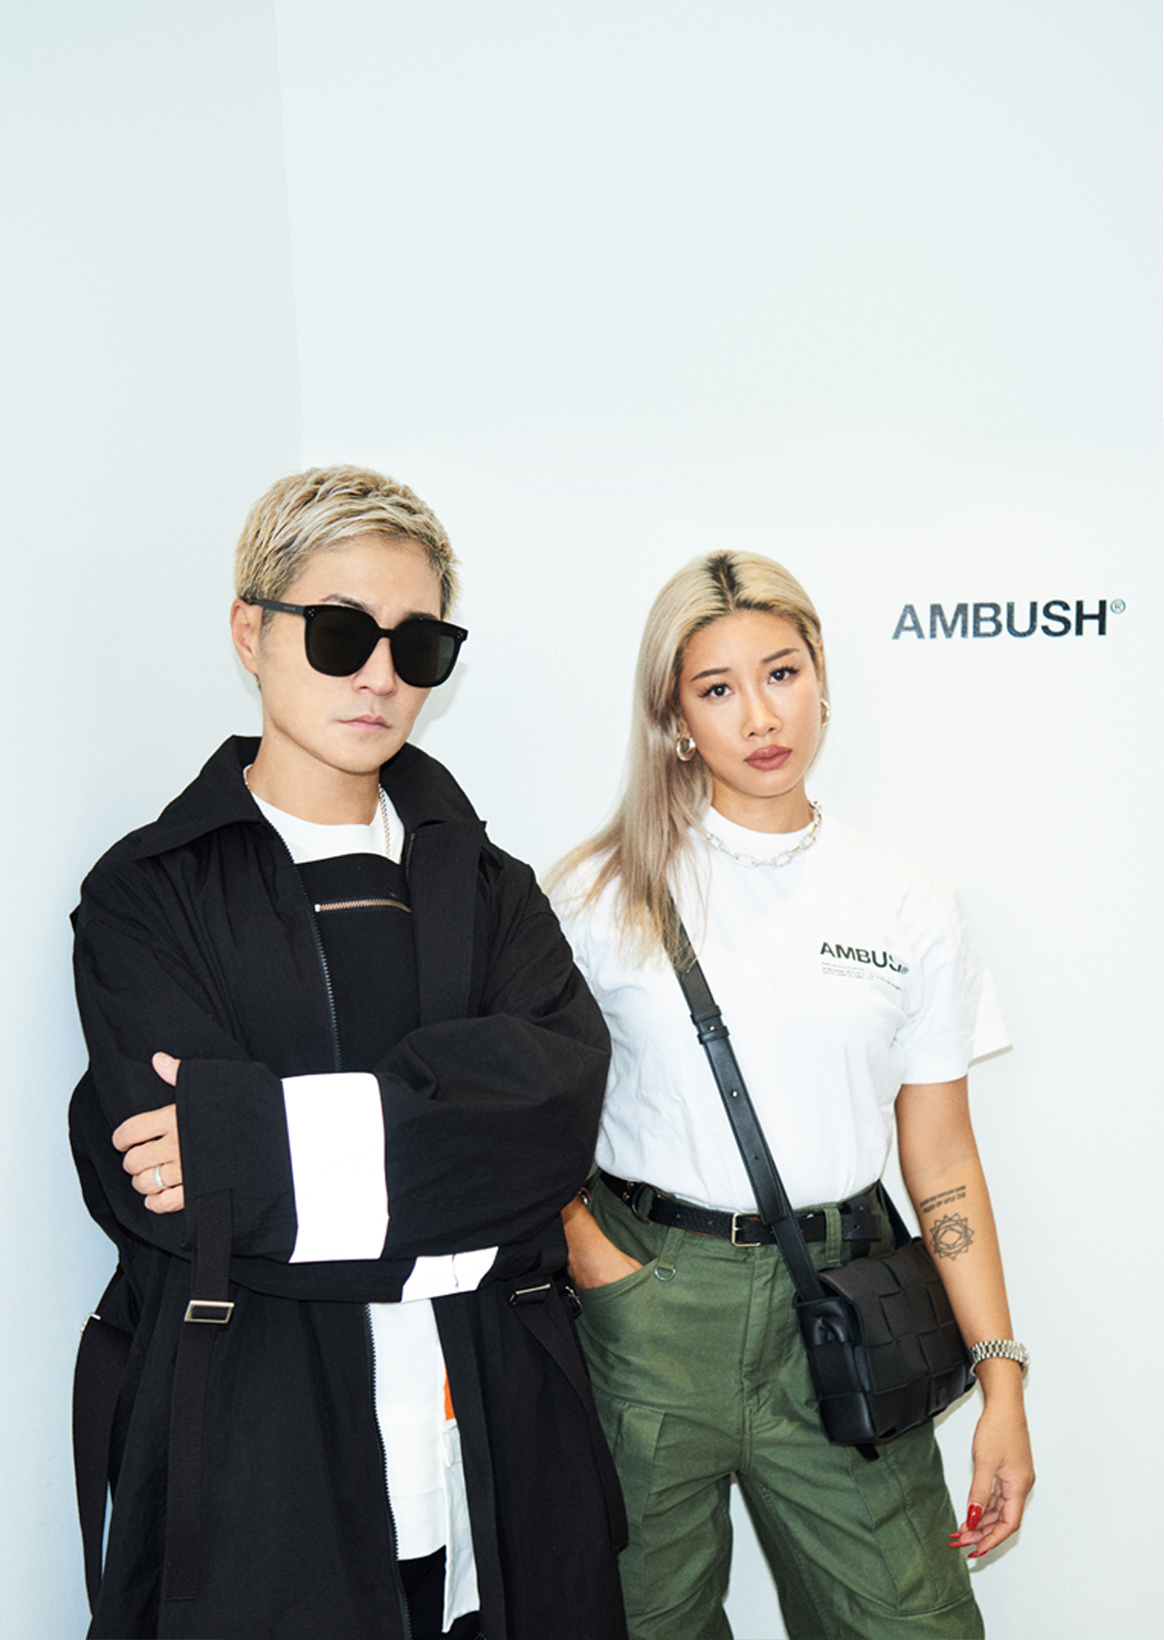 Interview YOON & VERBAL Co-founders of AMBUSH®